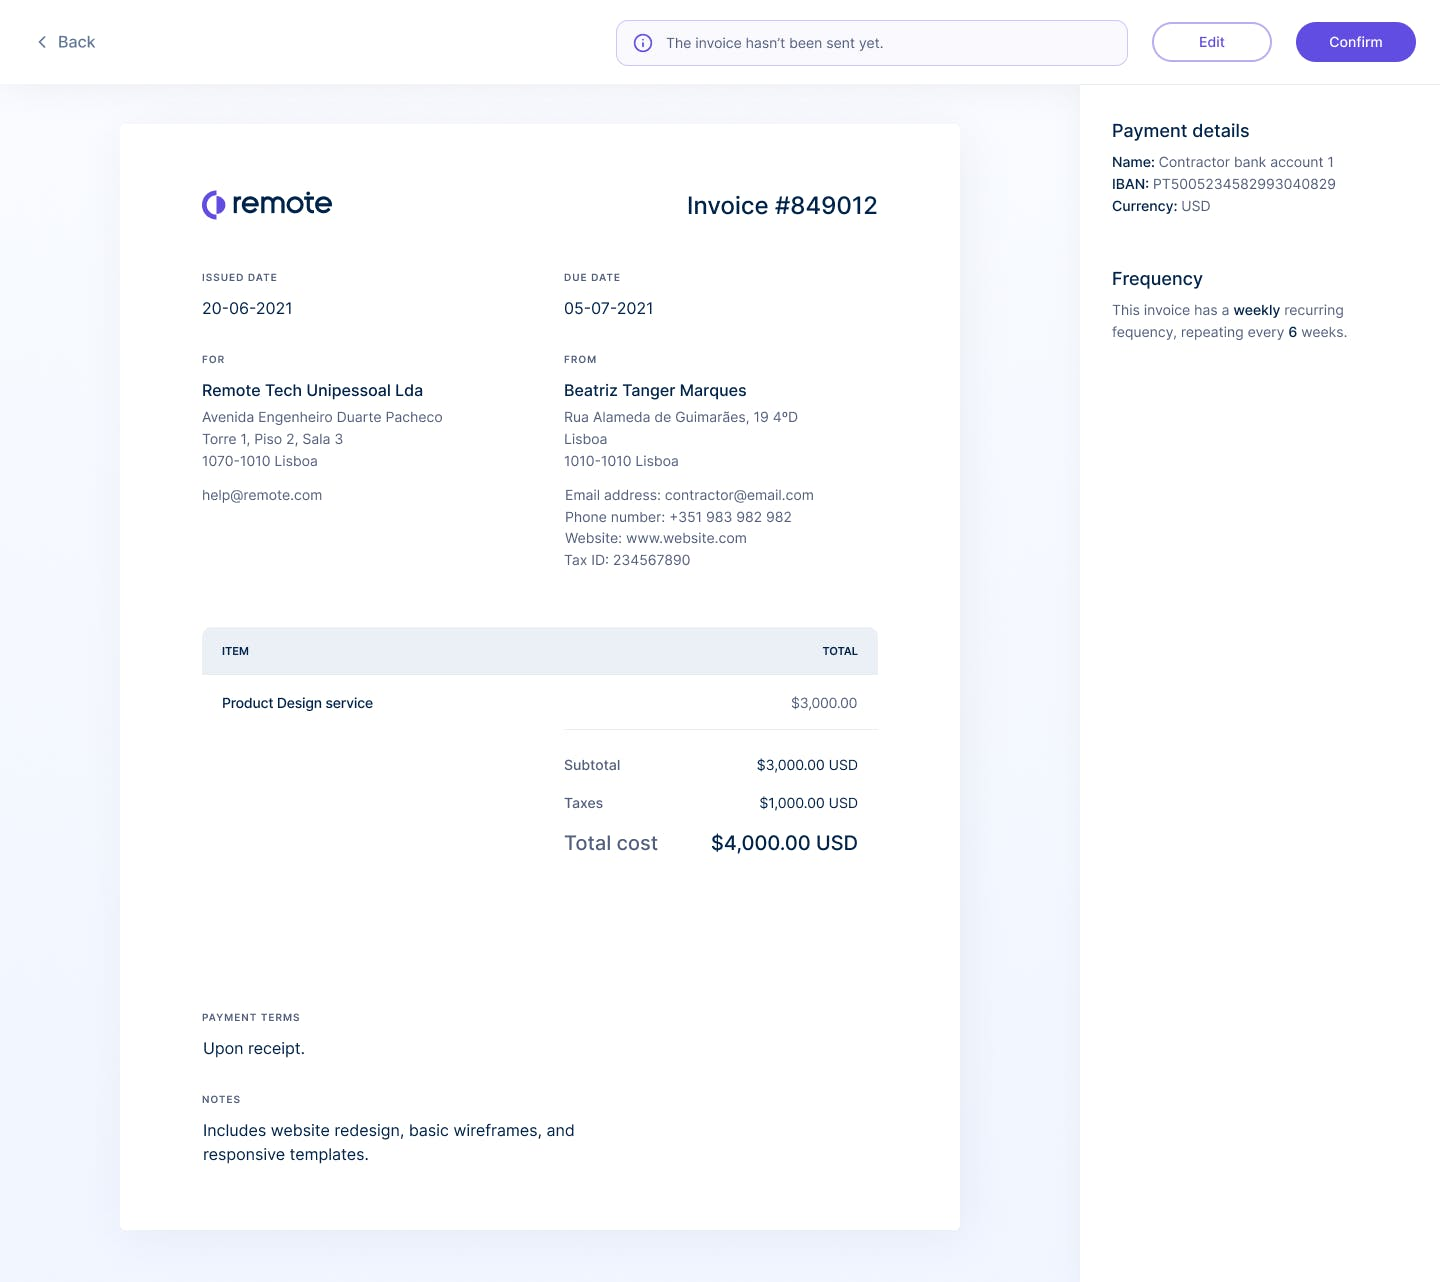 Preview of an in-app created invoice in Remote